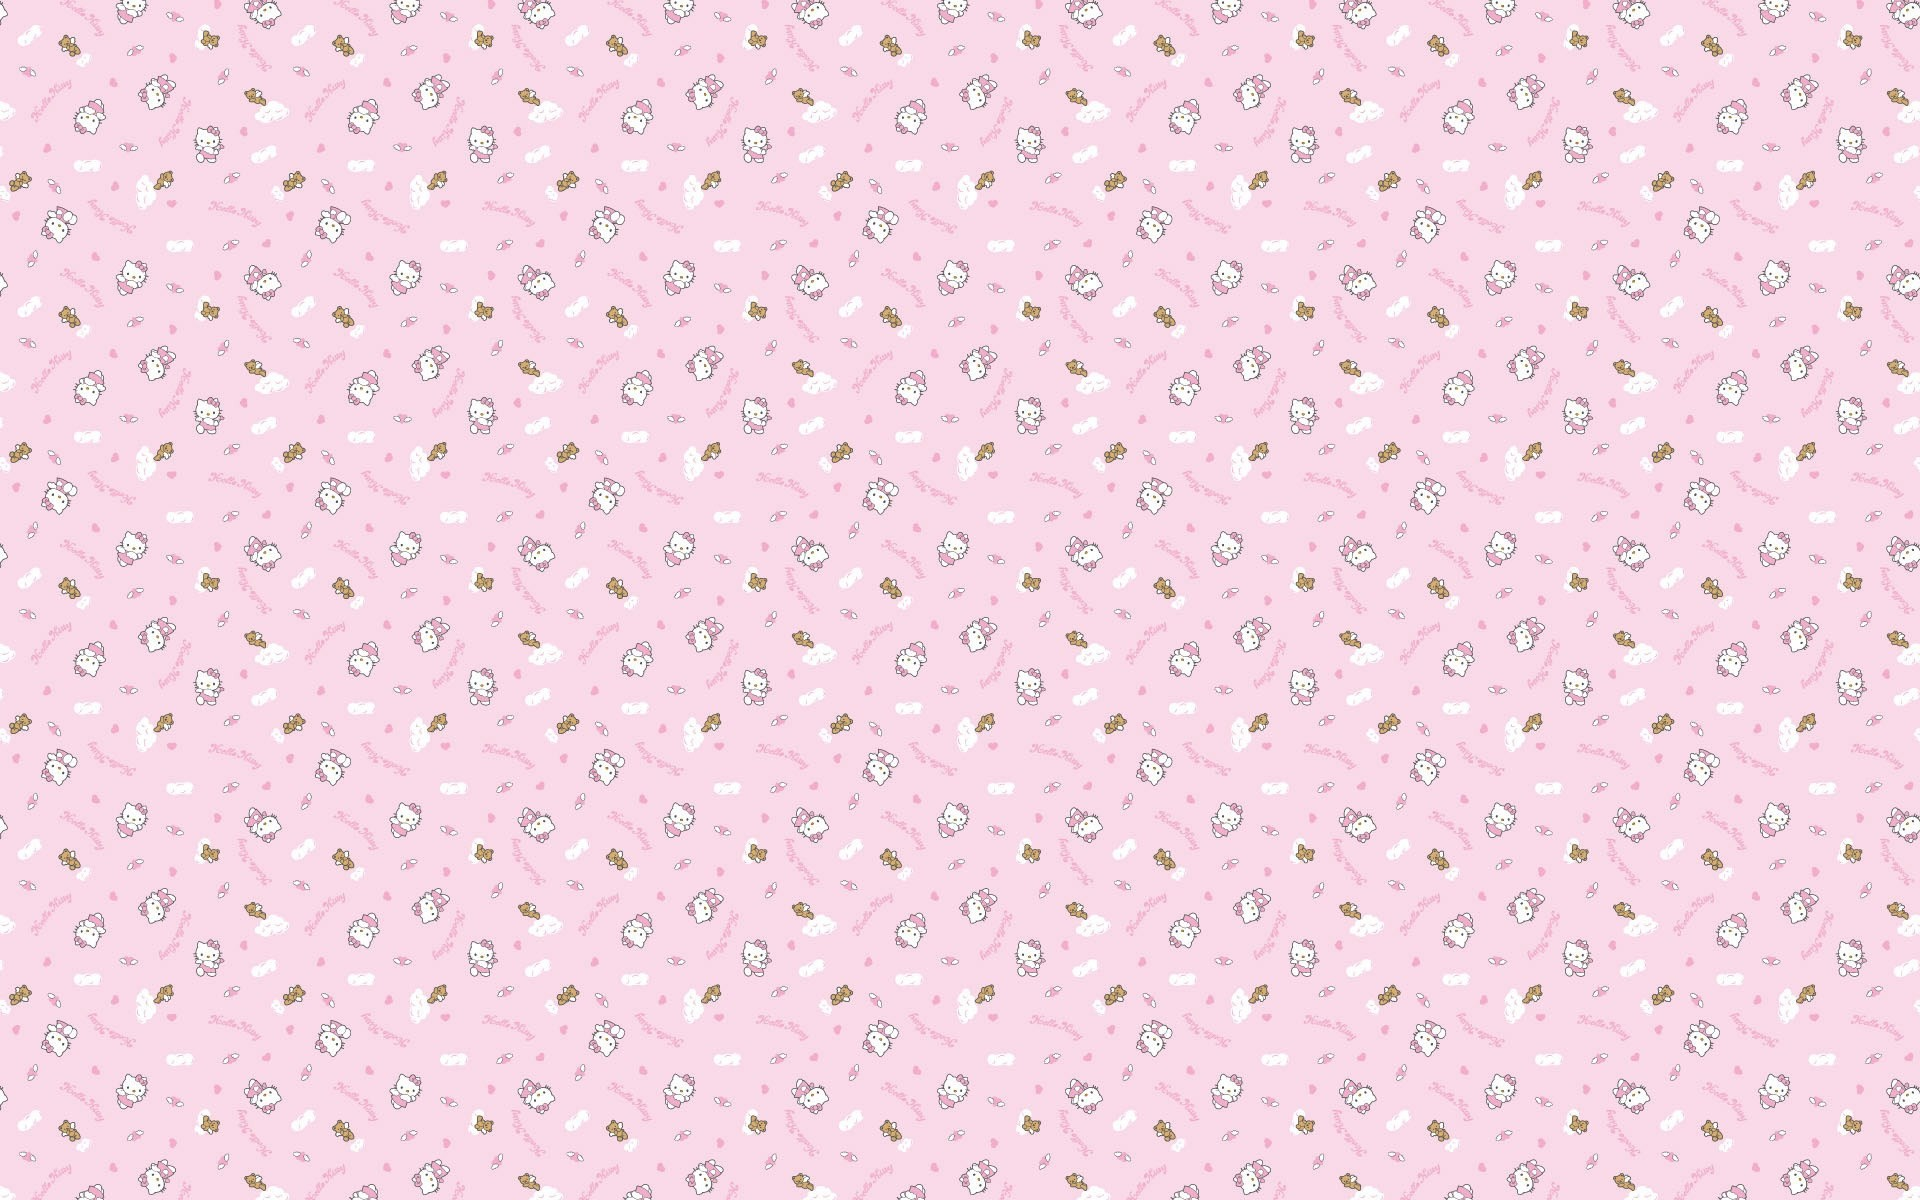 1920x1200 #162, Quality Cool hello kitty backround